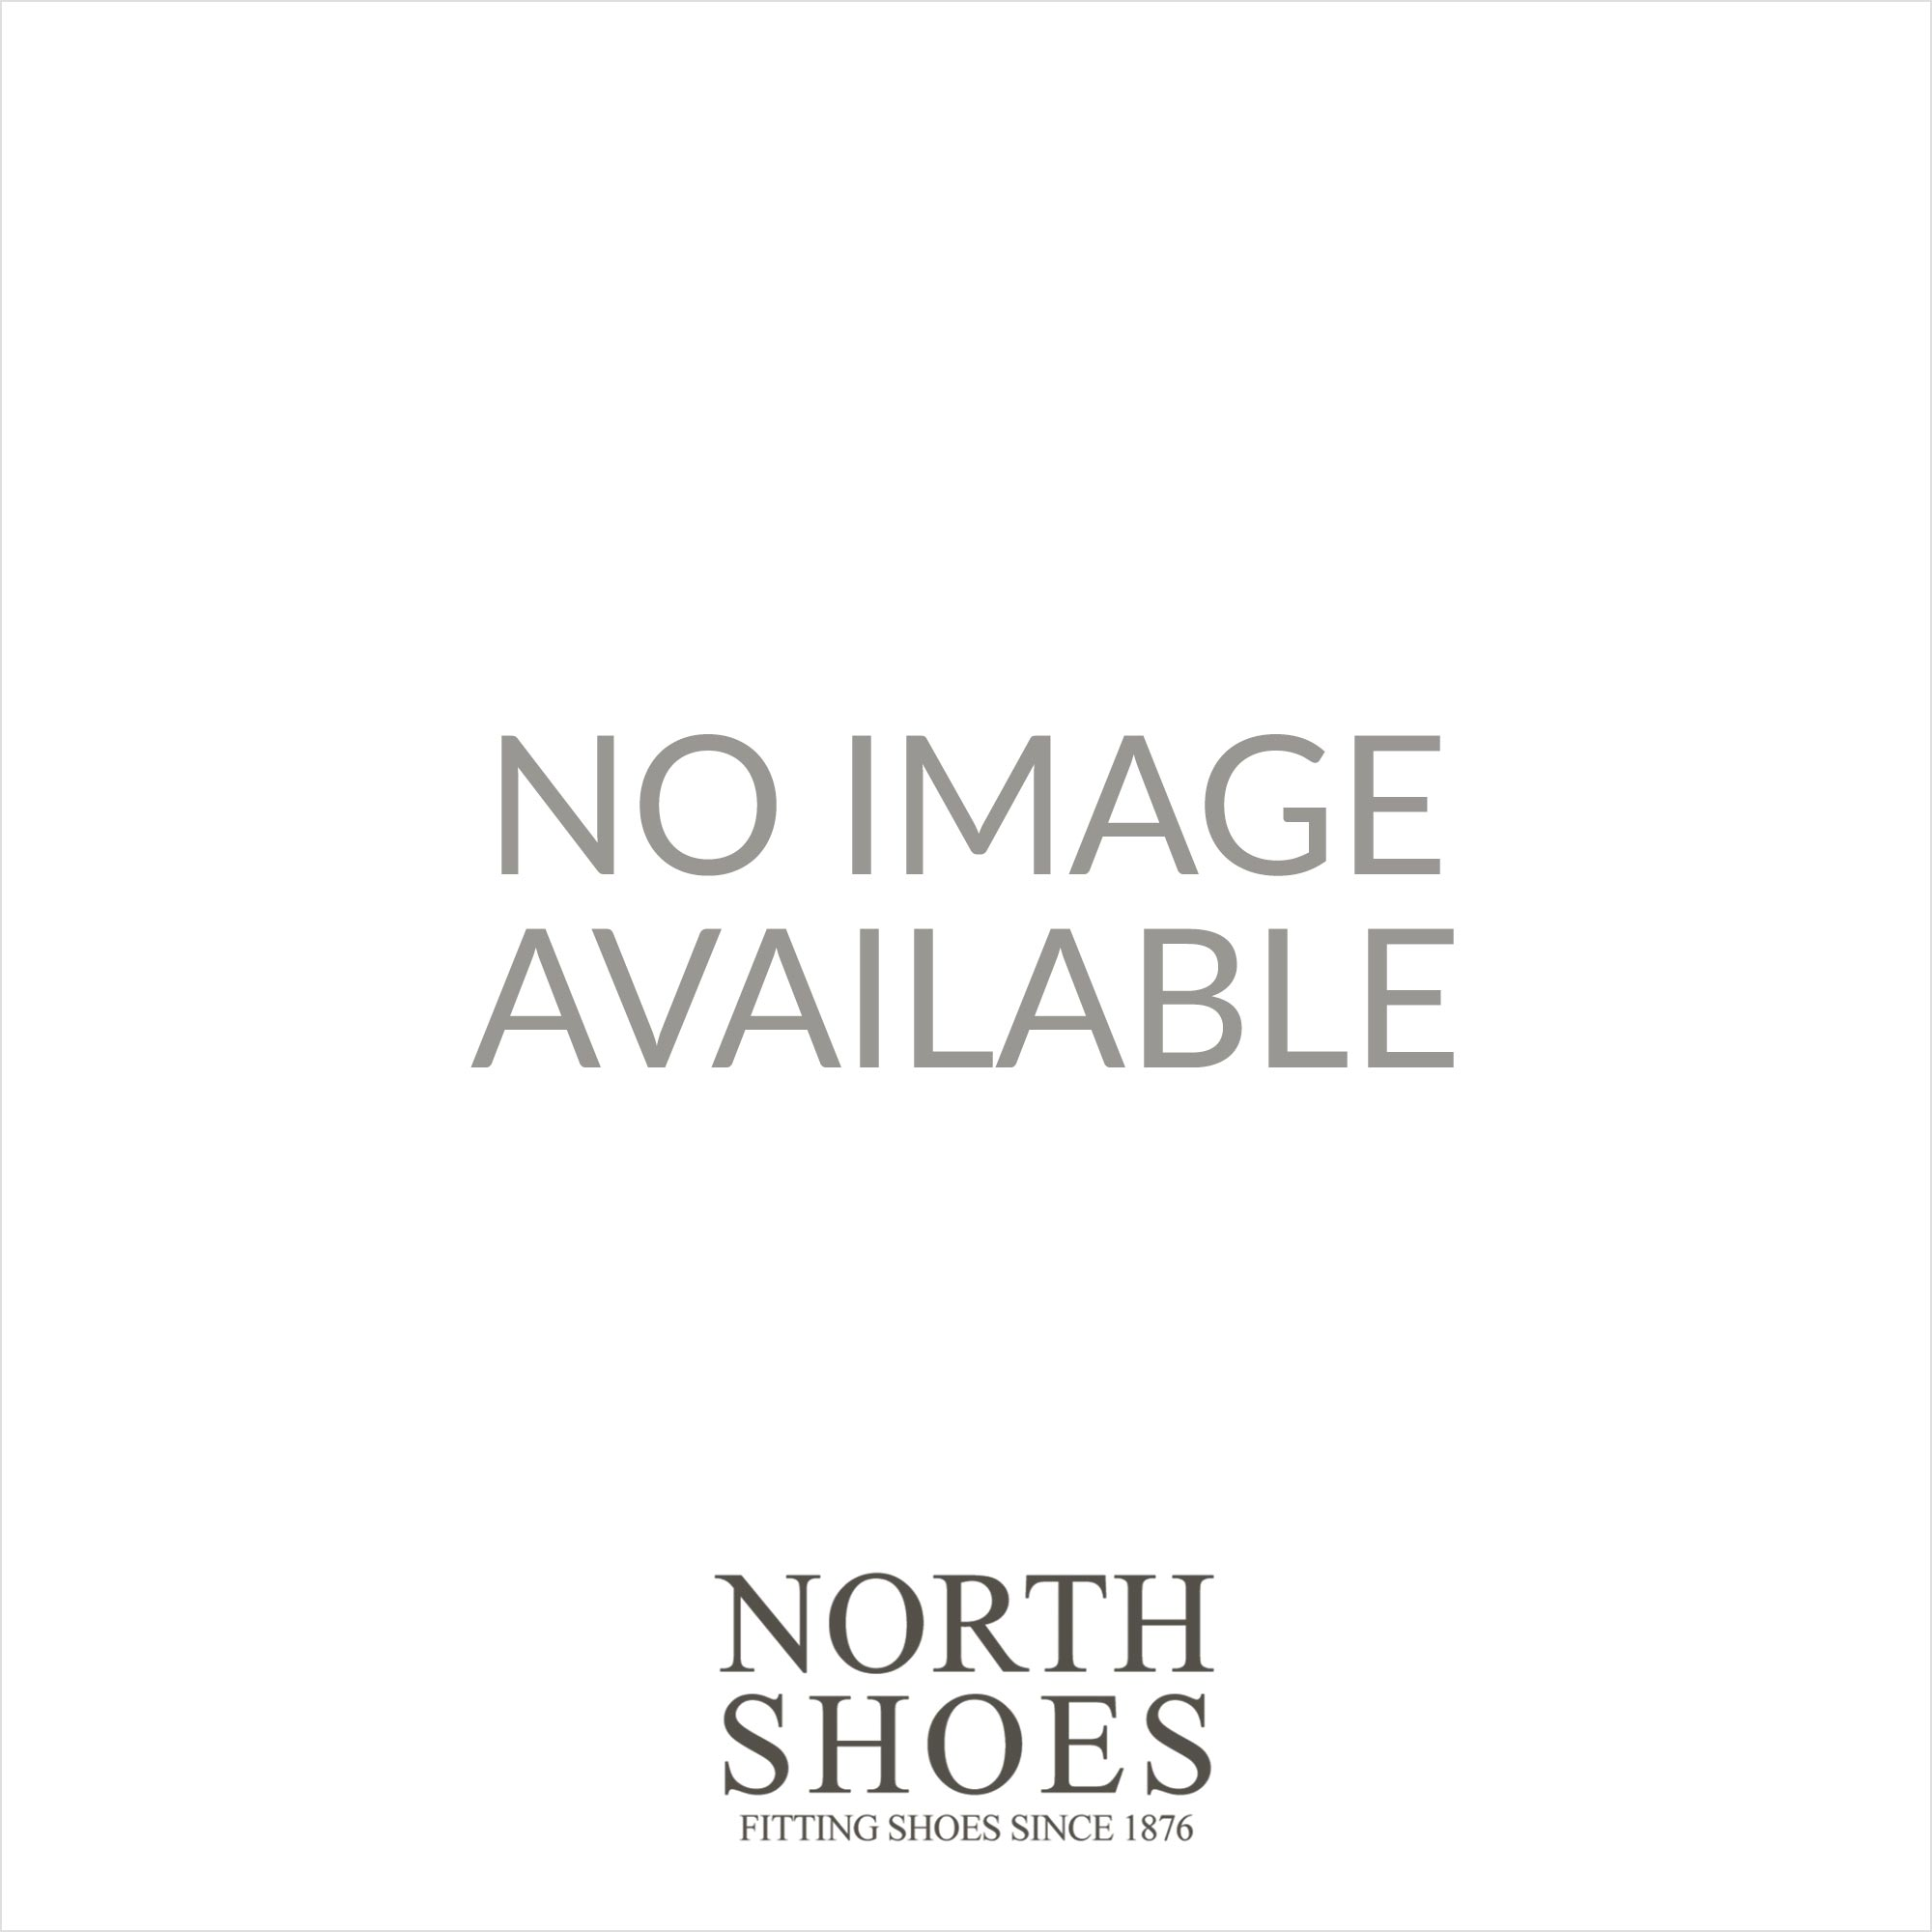 Milton VQGC0XT Black Suede Unisex Lace Up Casual Shoes